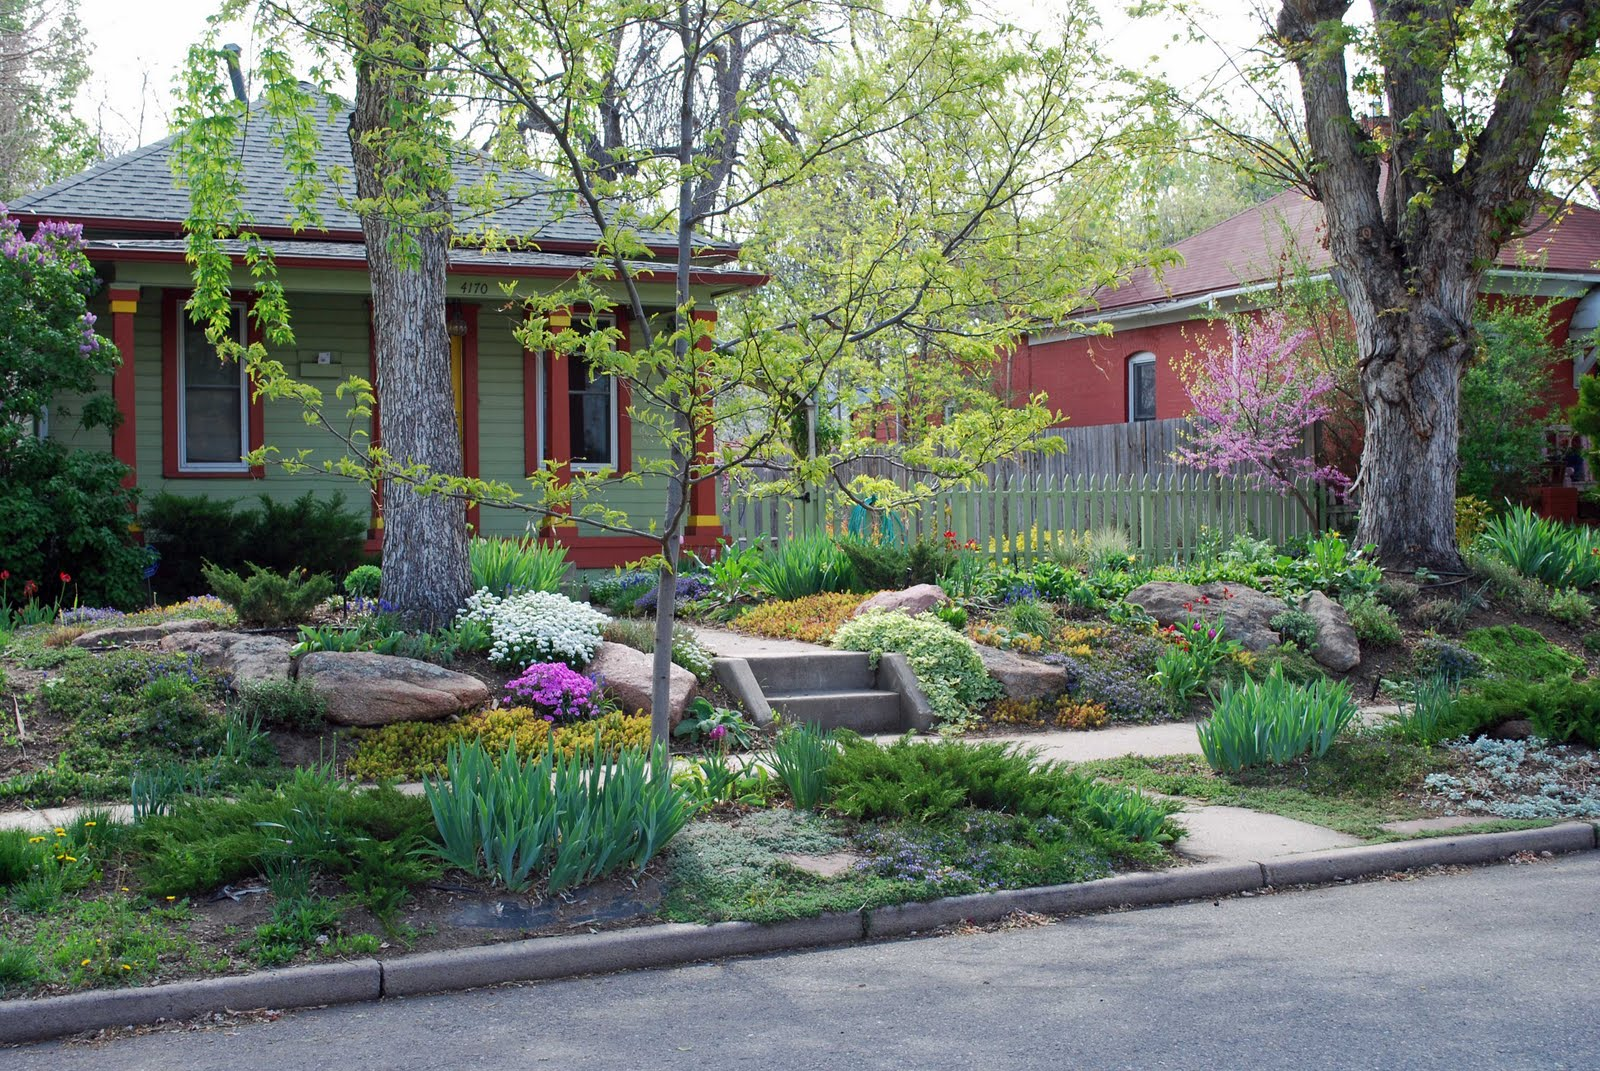 The art garden garden designers roundtable lawn alternatives - No grass backyard ideas ...